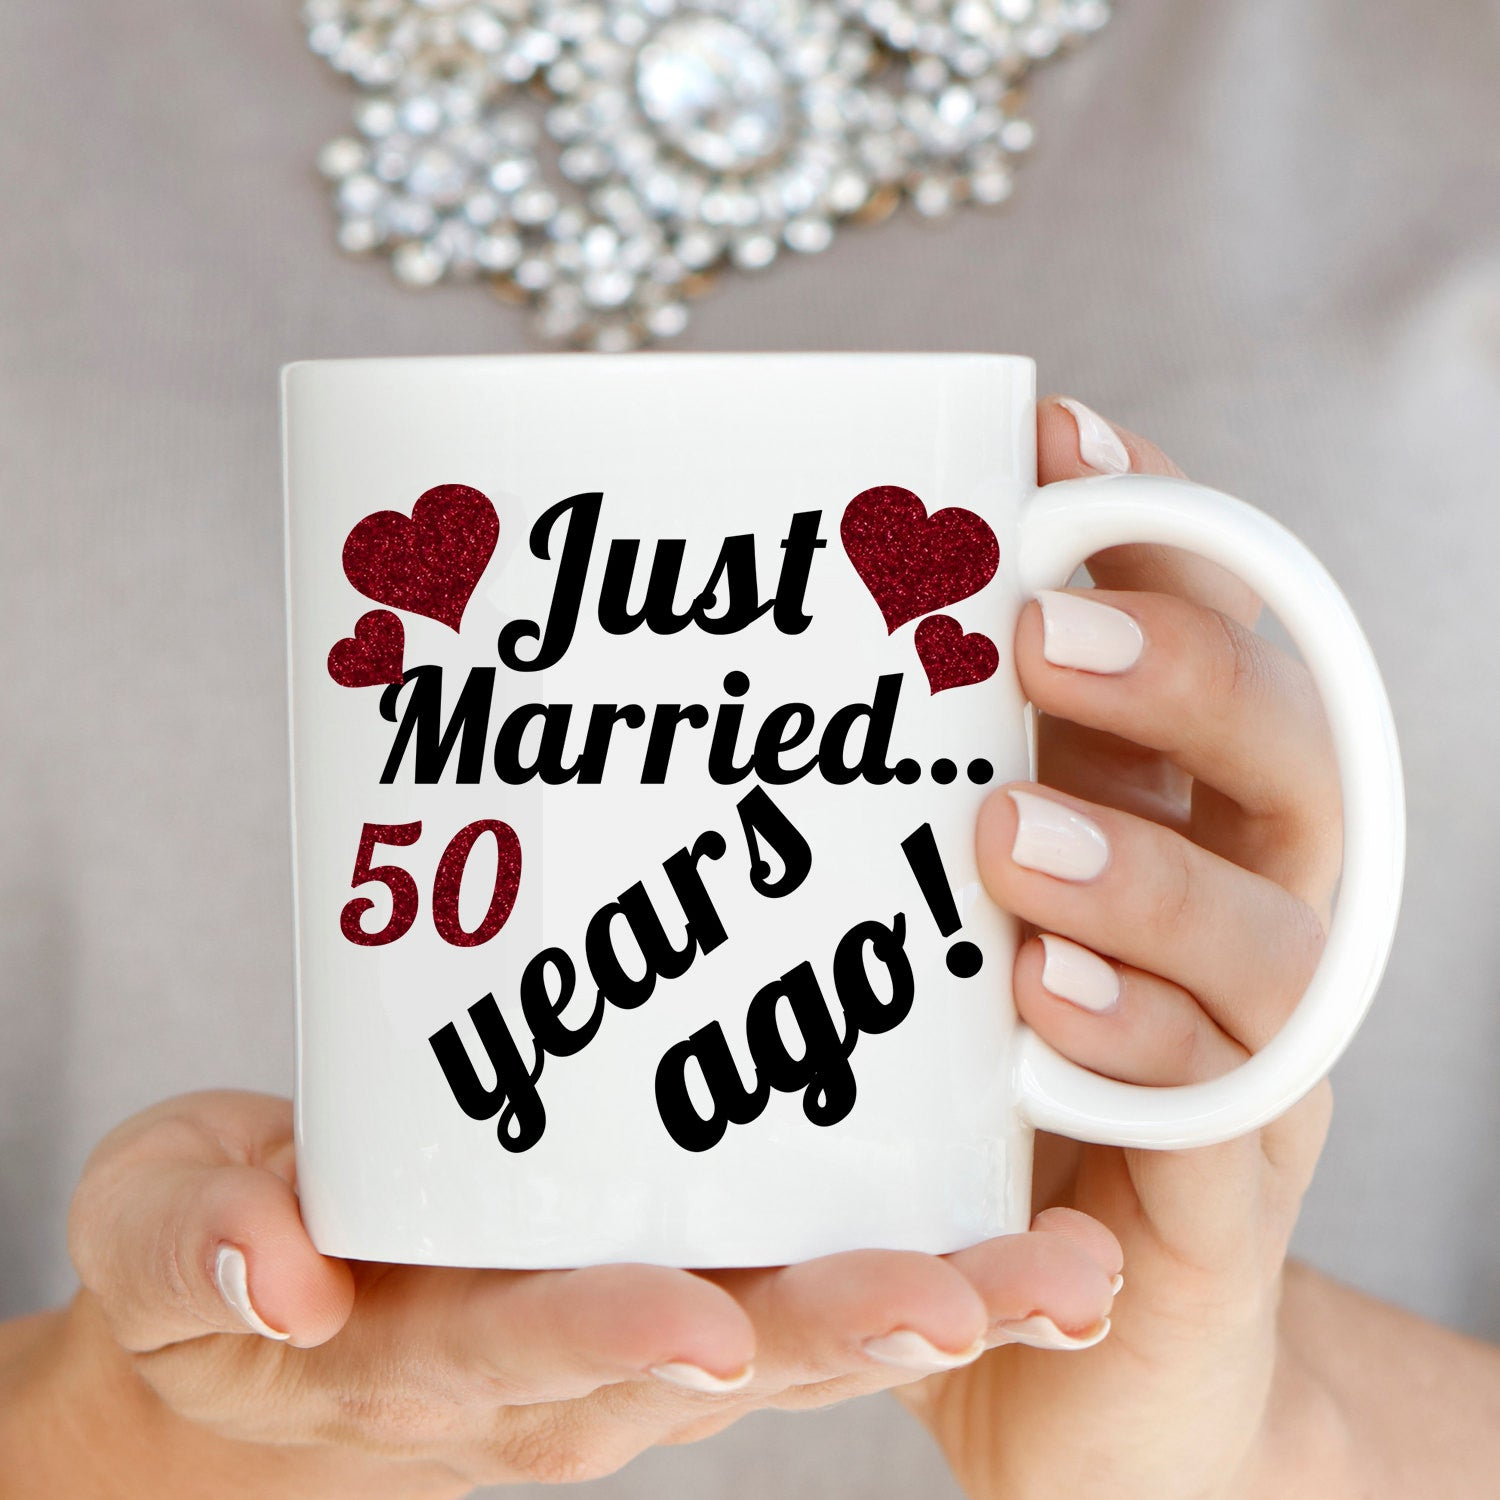 Crazy Wedding Gifts: Personalized! Wedding Anniversary Gifts For Couples Just